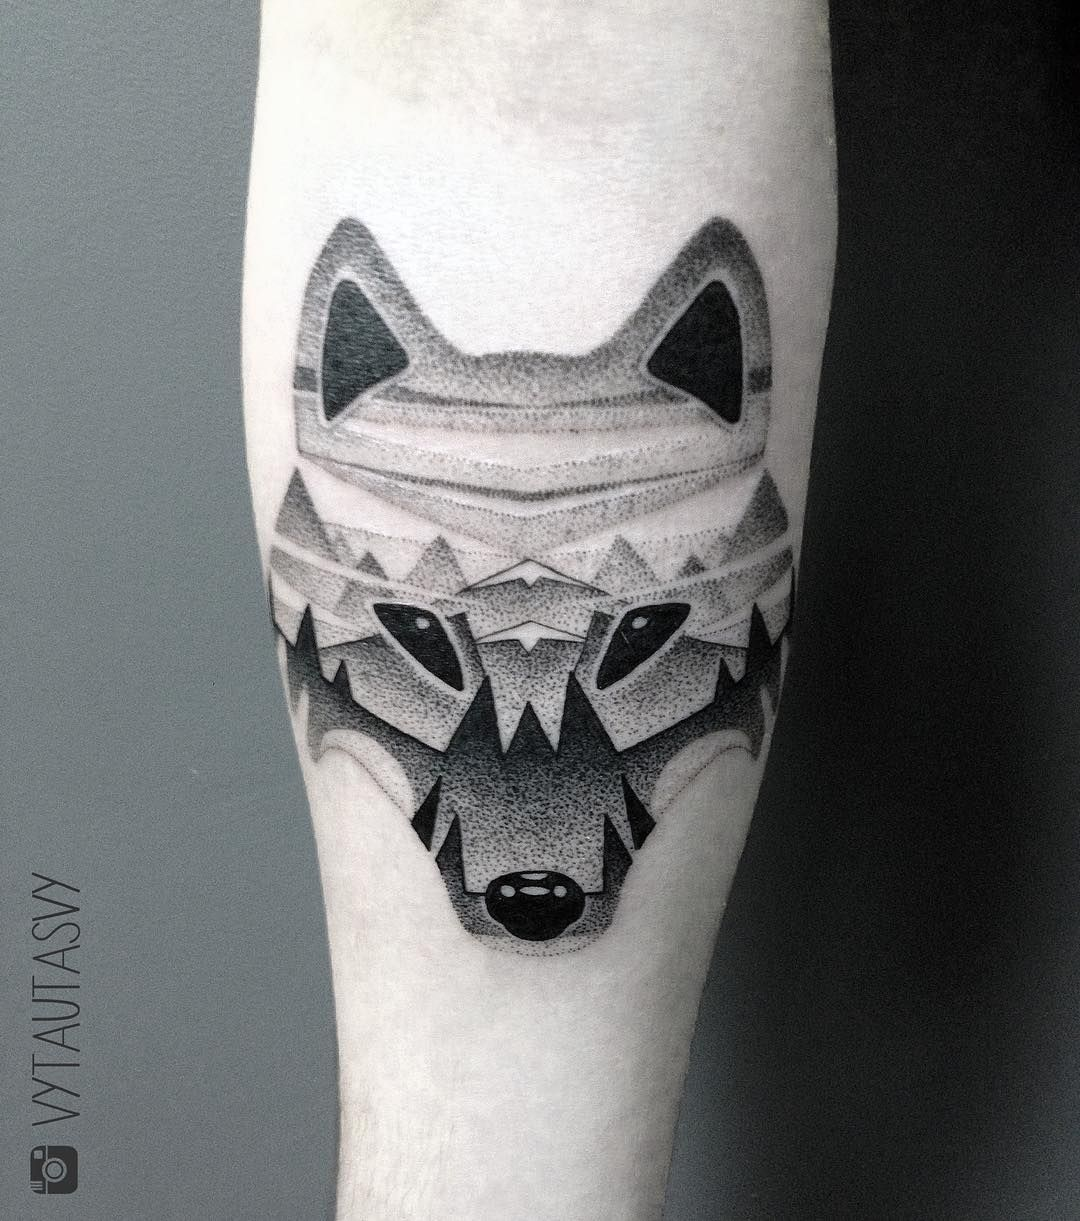 Abstract Wolf Tattoo With Mountains Tattoos For Women Ankle Tattoo Designs Tattoos For Guys